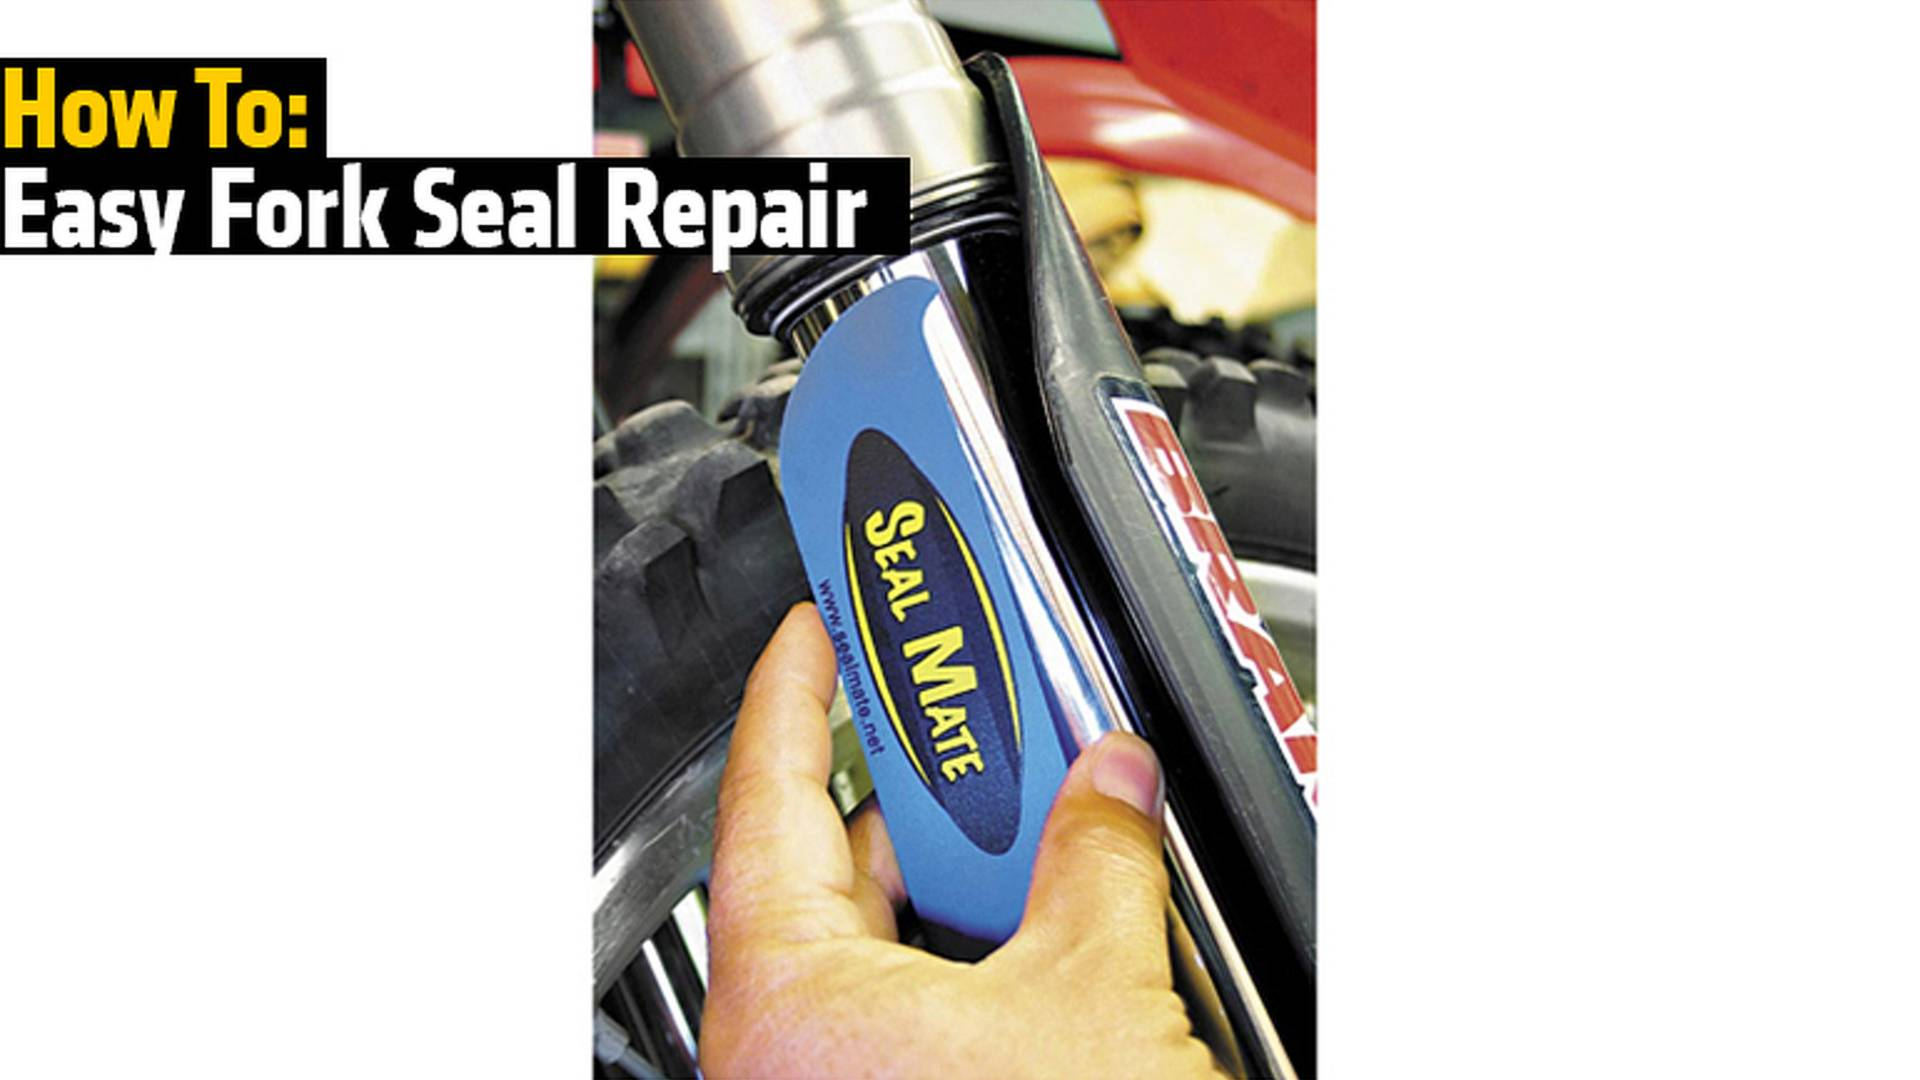 How To: Easy Fork Seal Repair